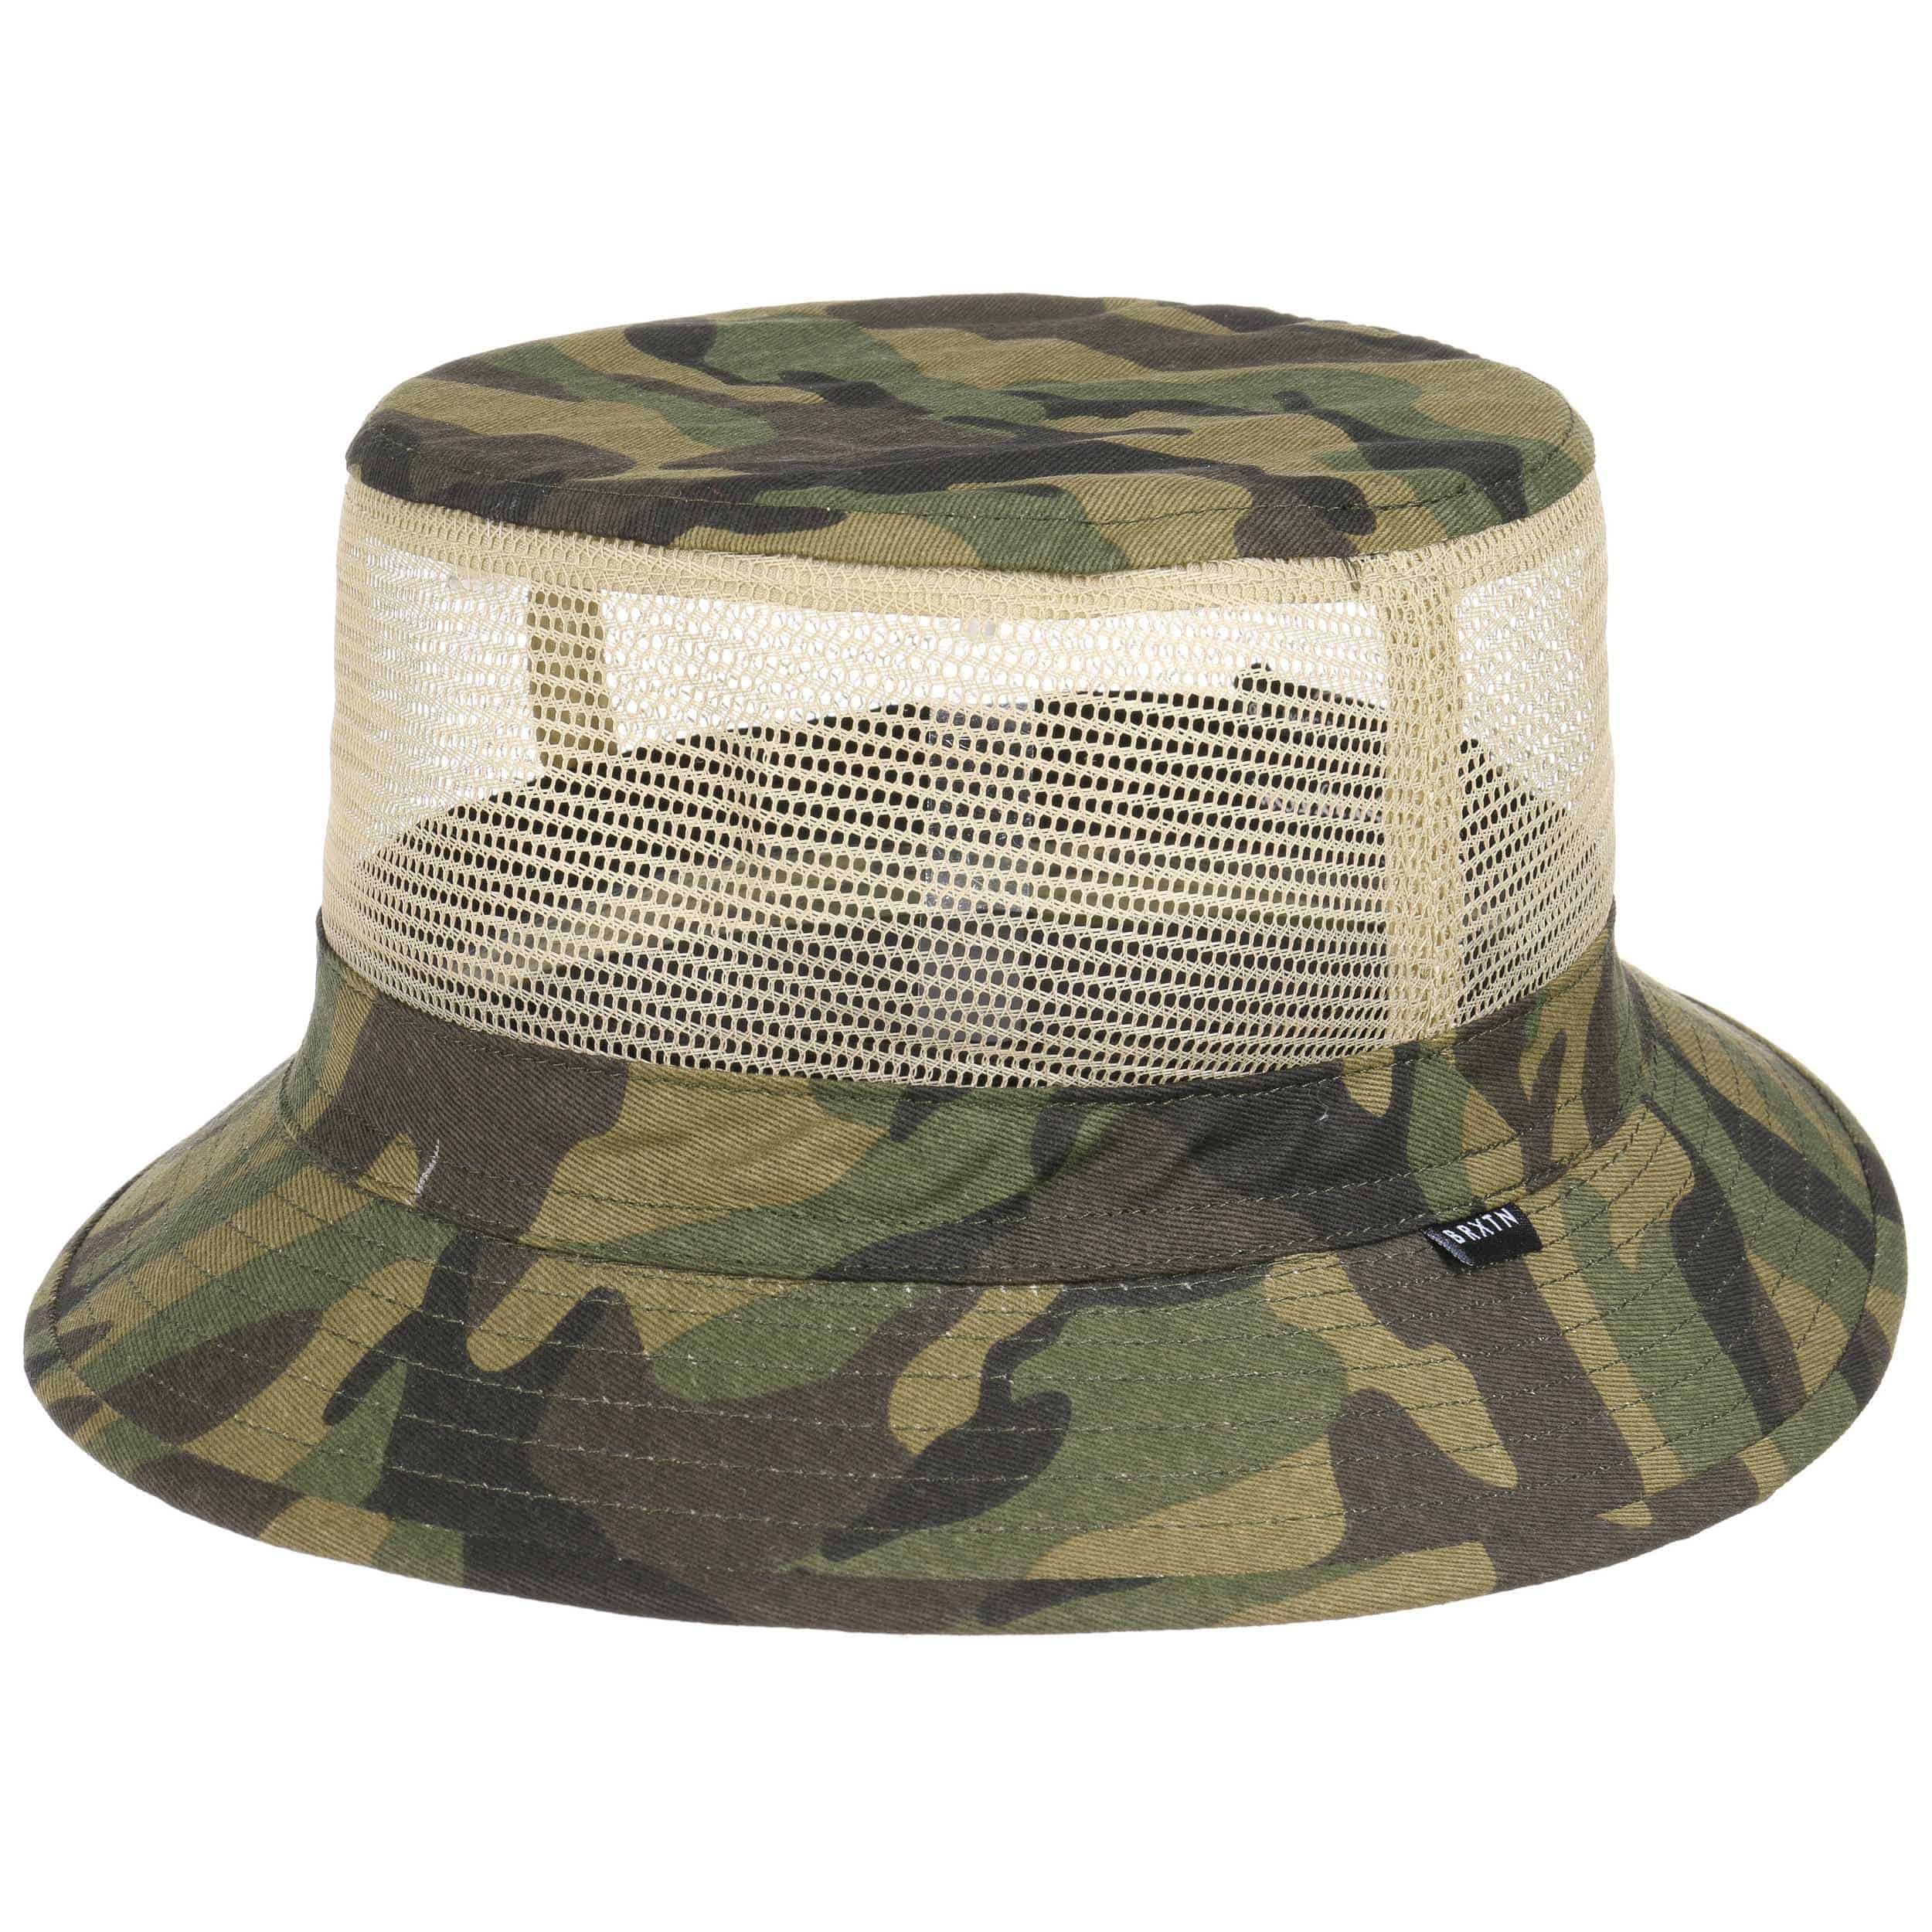 5104ce57d3abf get mesh bucket hat by brixton camouflage 4 8515c c51e9